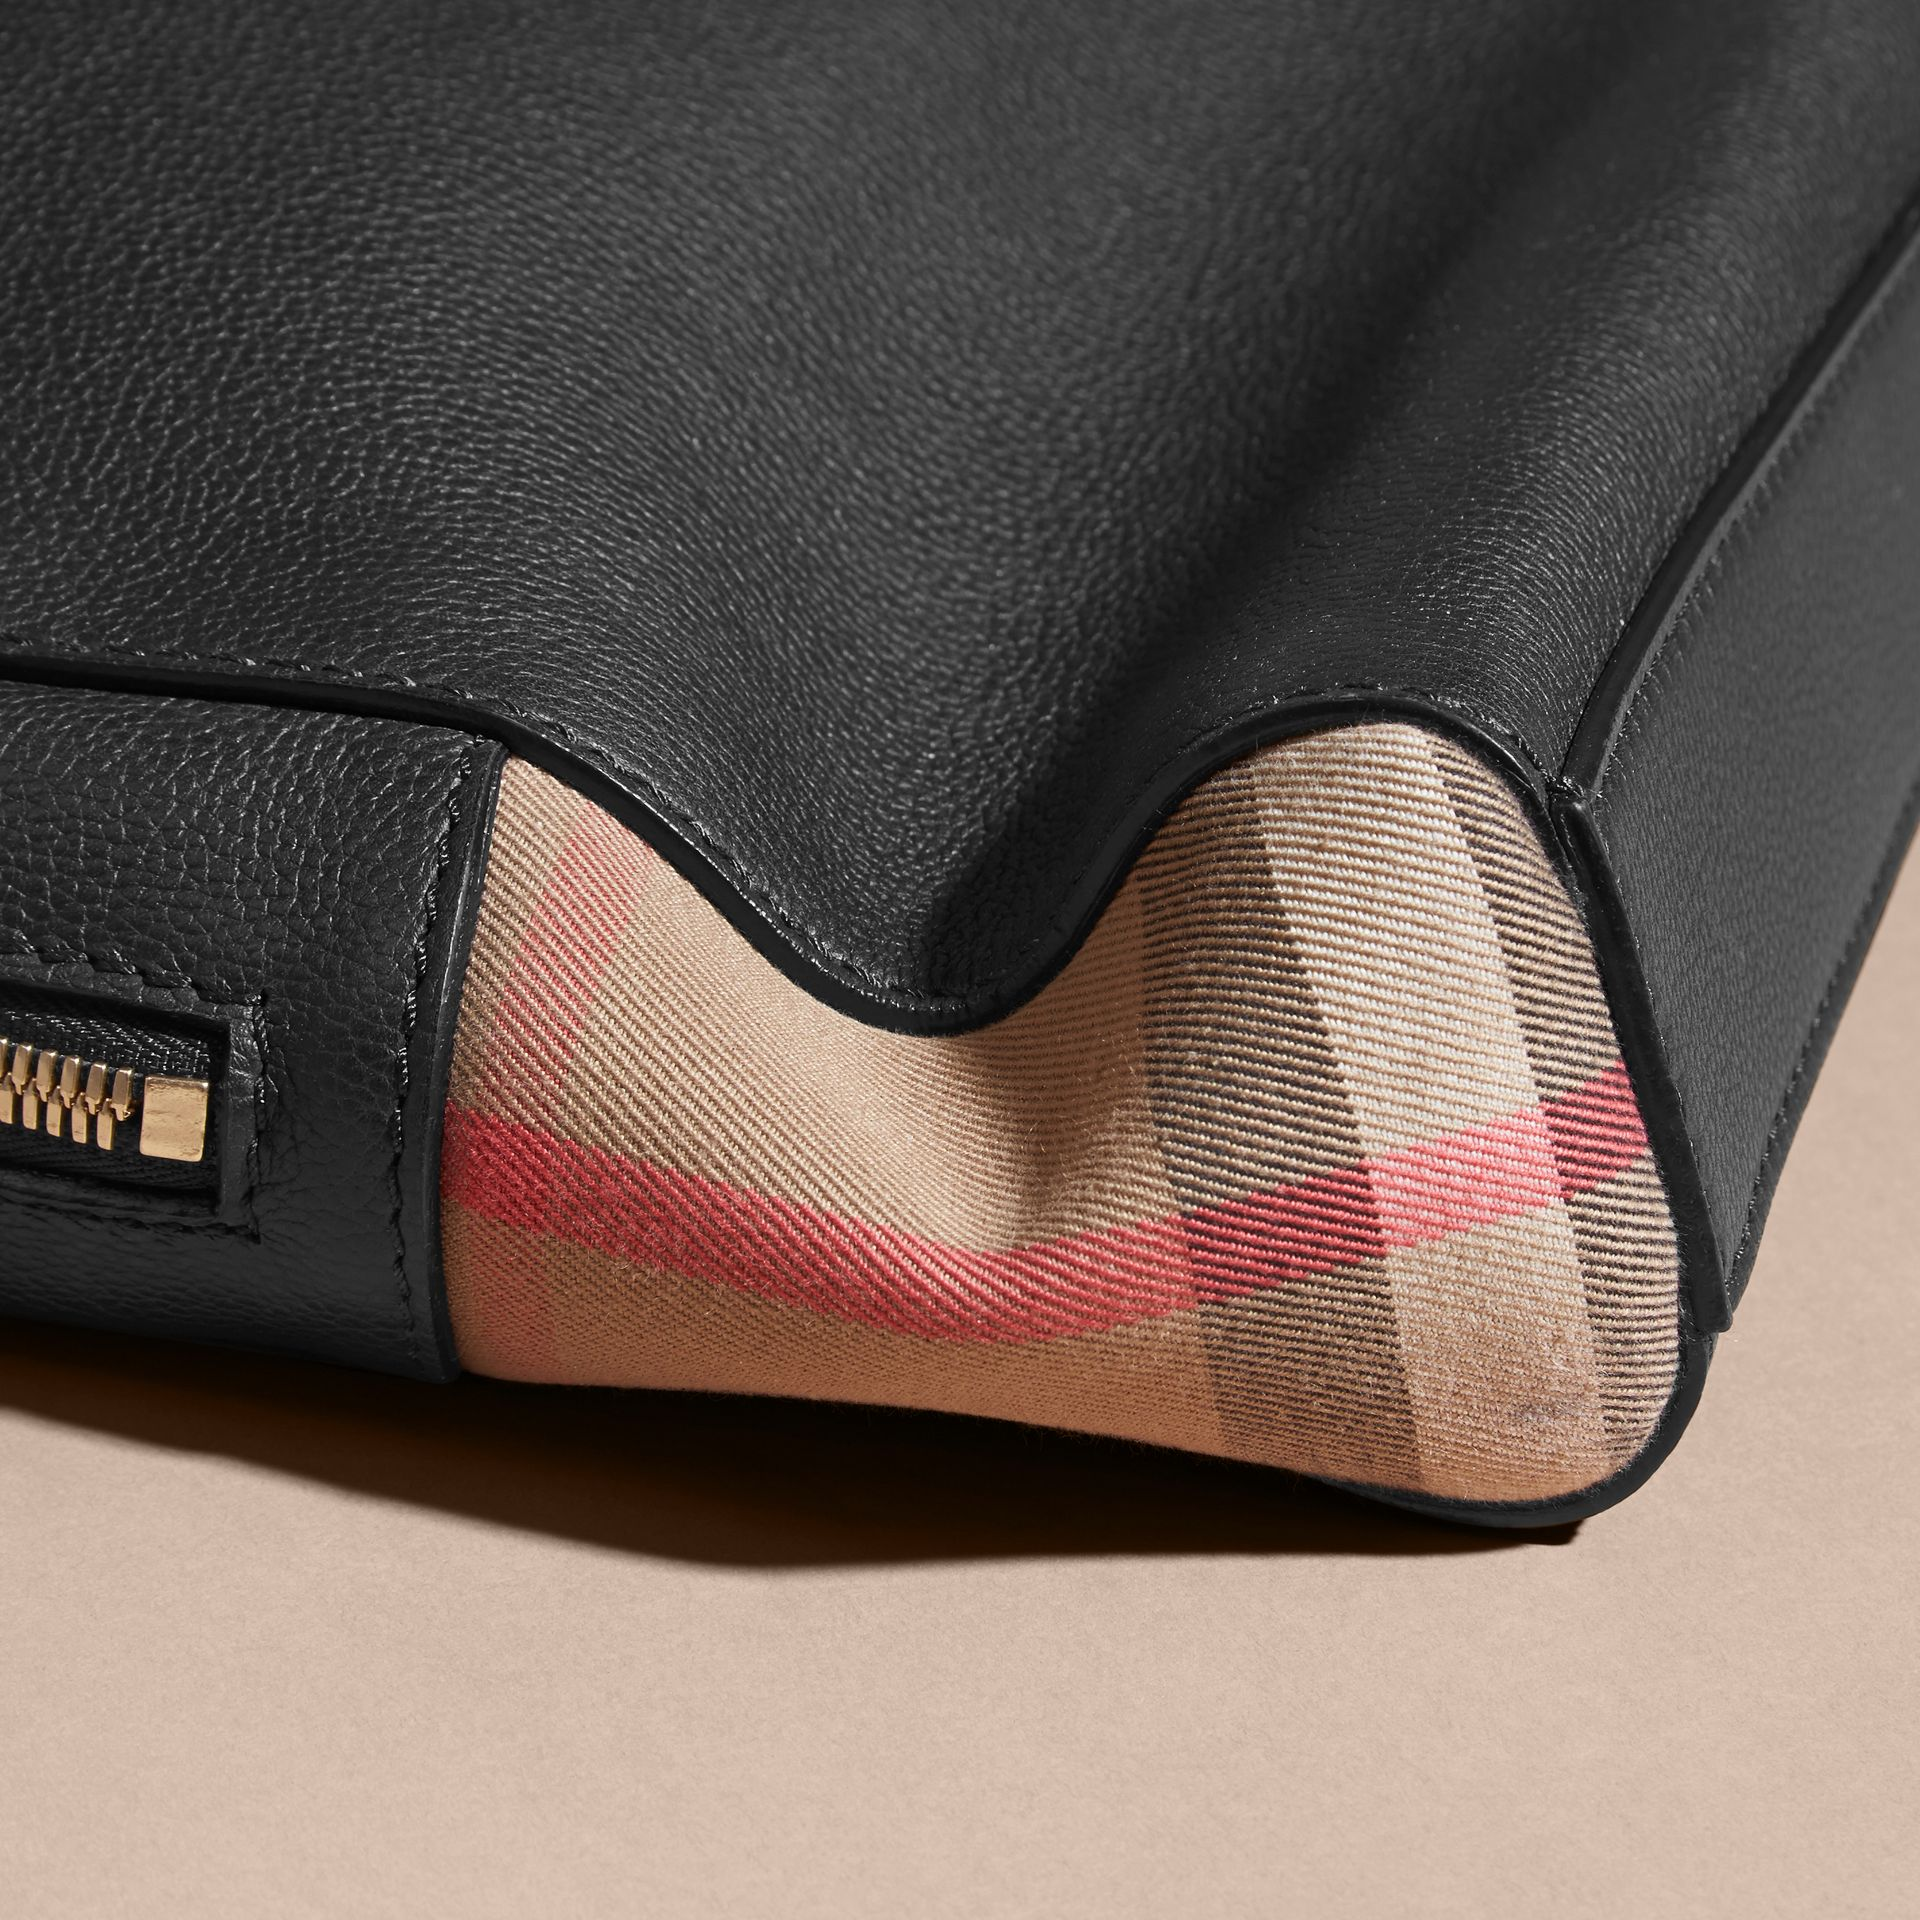 Attaché-case en cuir et tissu House check (Noir) - Homme | Burberry - photo de la galerie 7